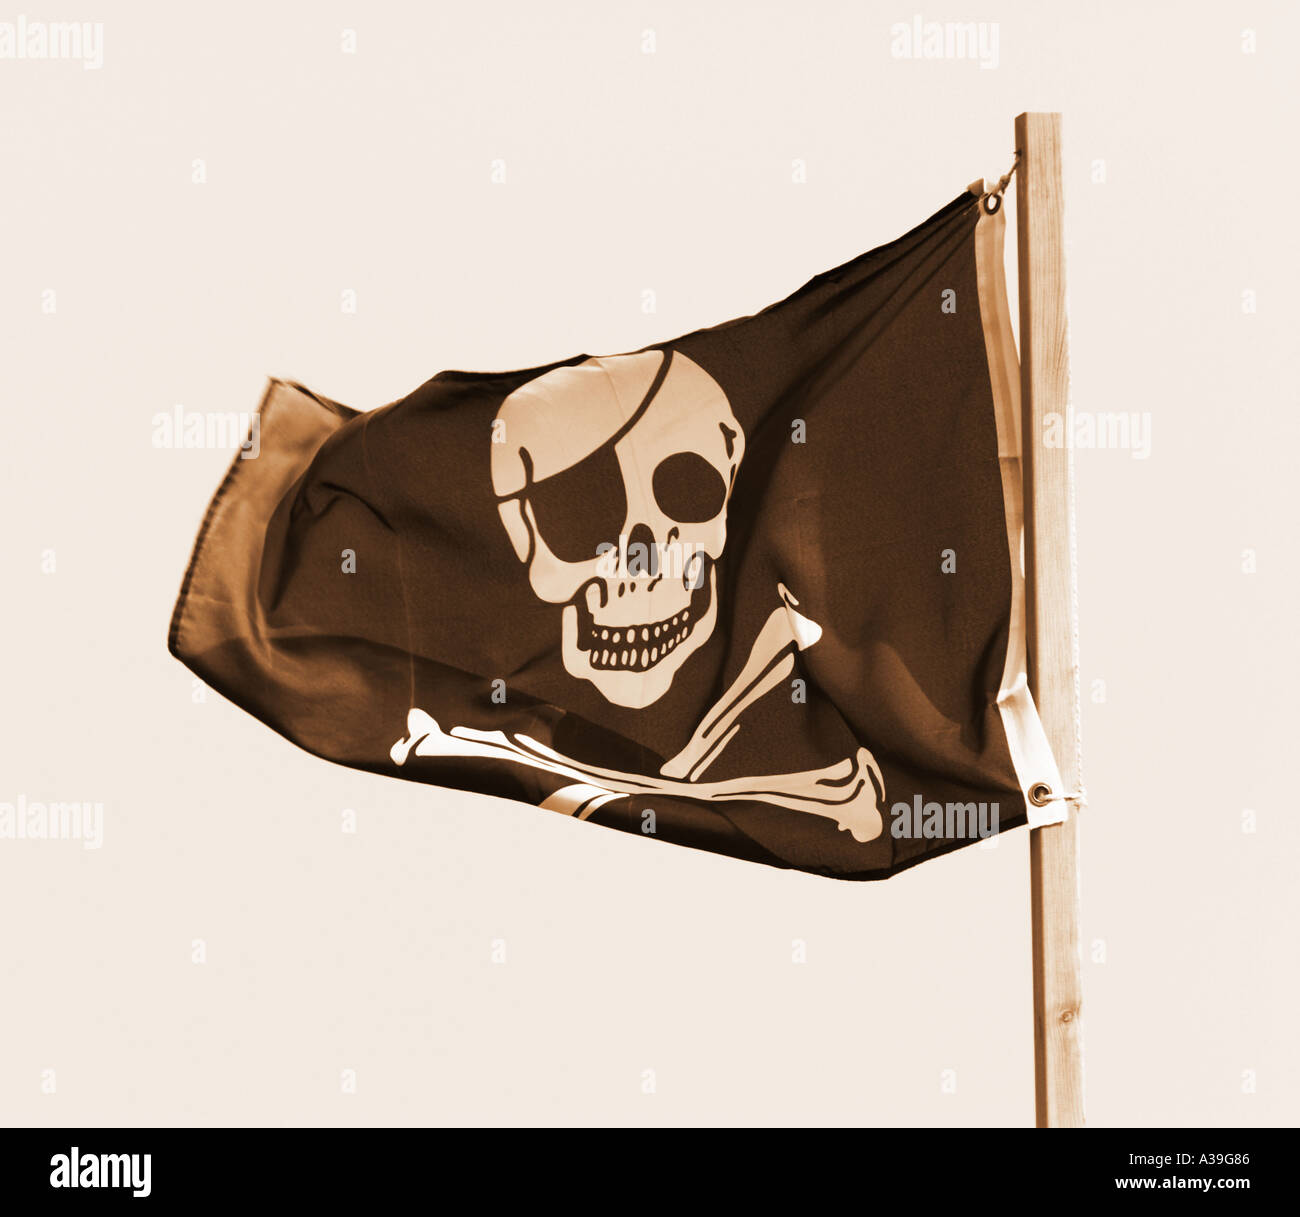 Skull and Crossbones Pirate Flag Jolly Roger - Stock Image